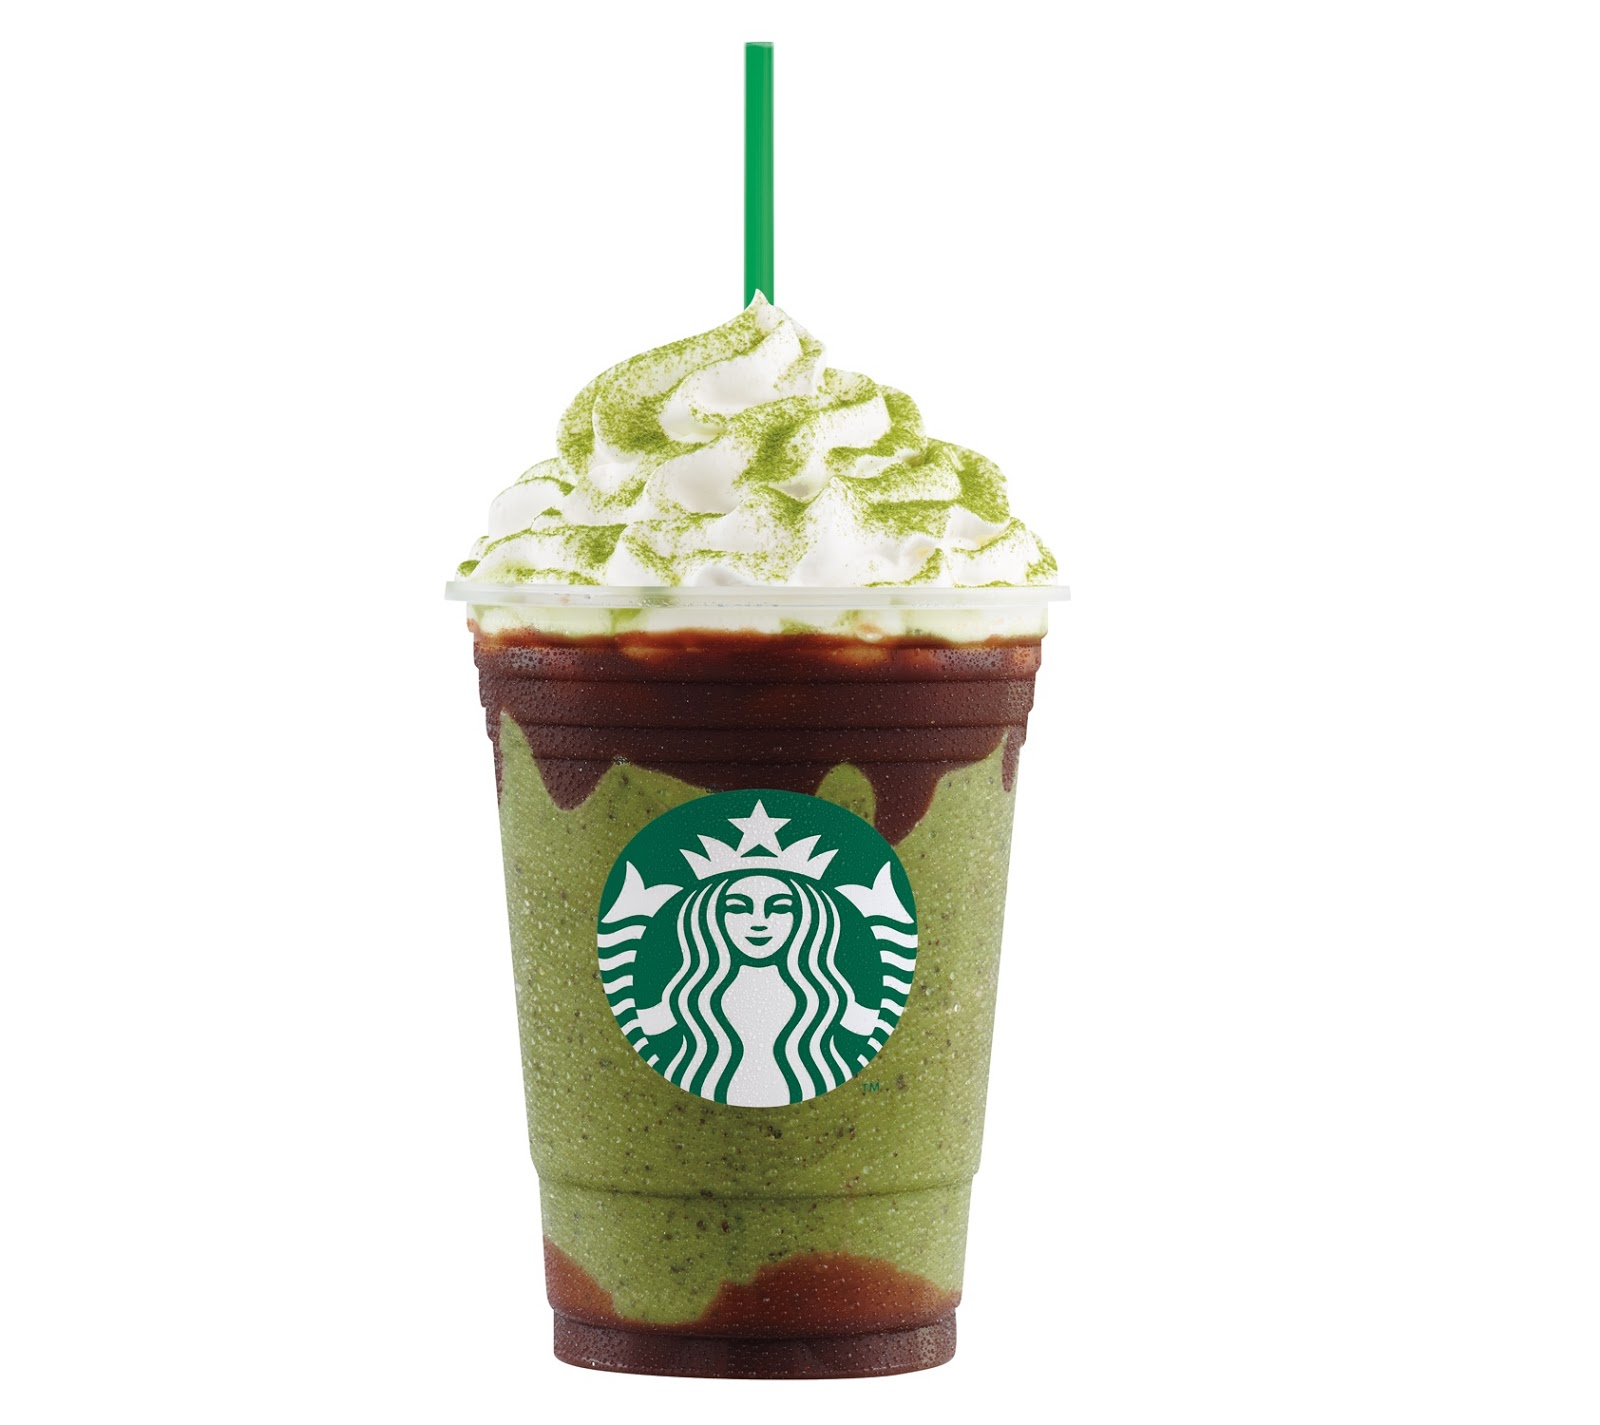 Starbucks Launches New Frappuccino Beverages, Food, and Limited ...